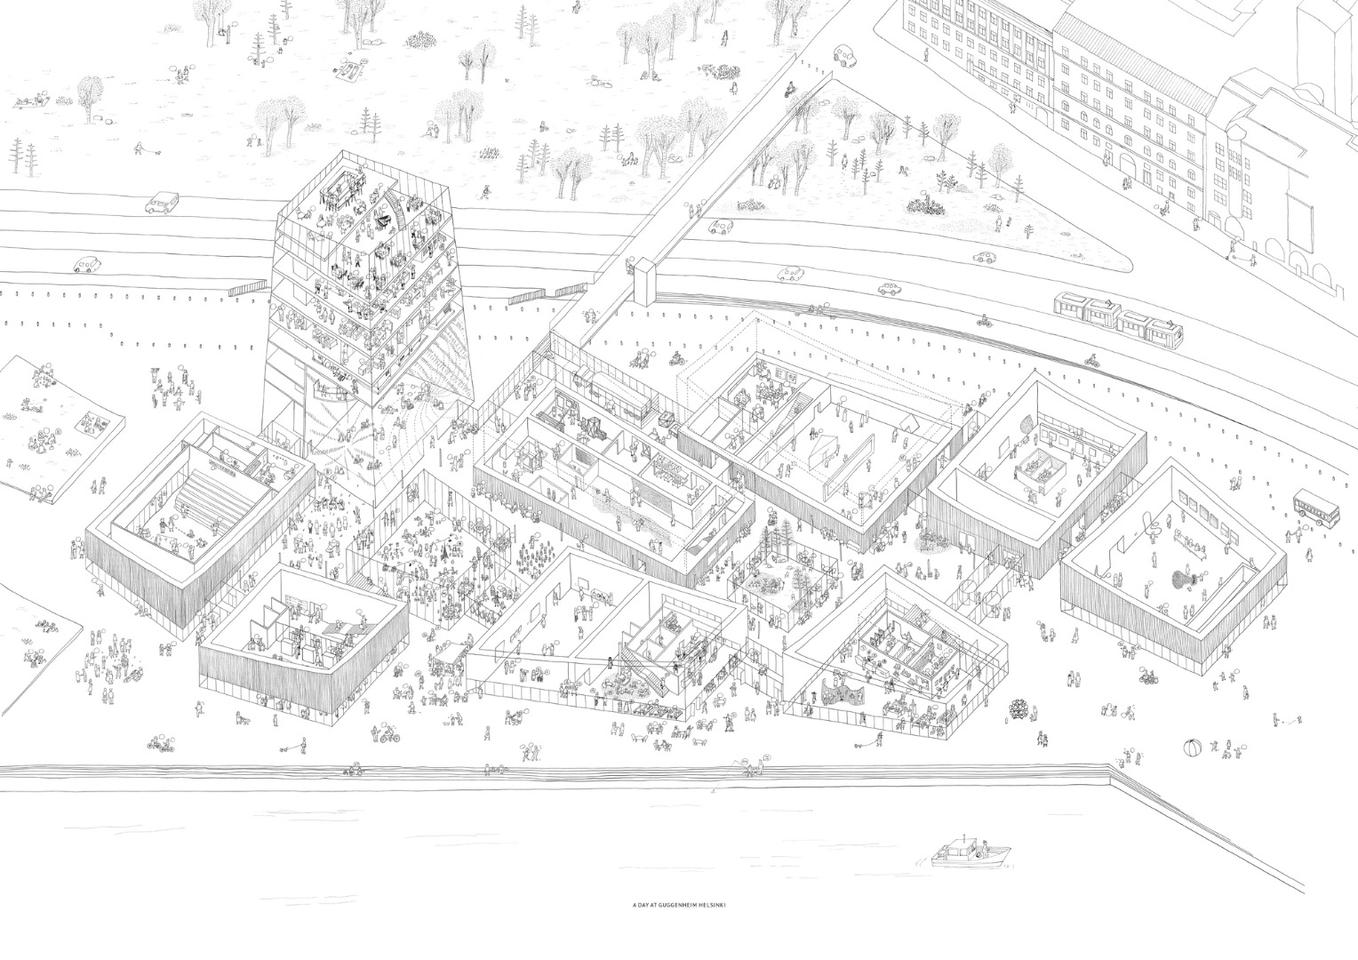 Architectural drawing of Art in the City